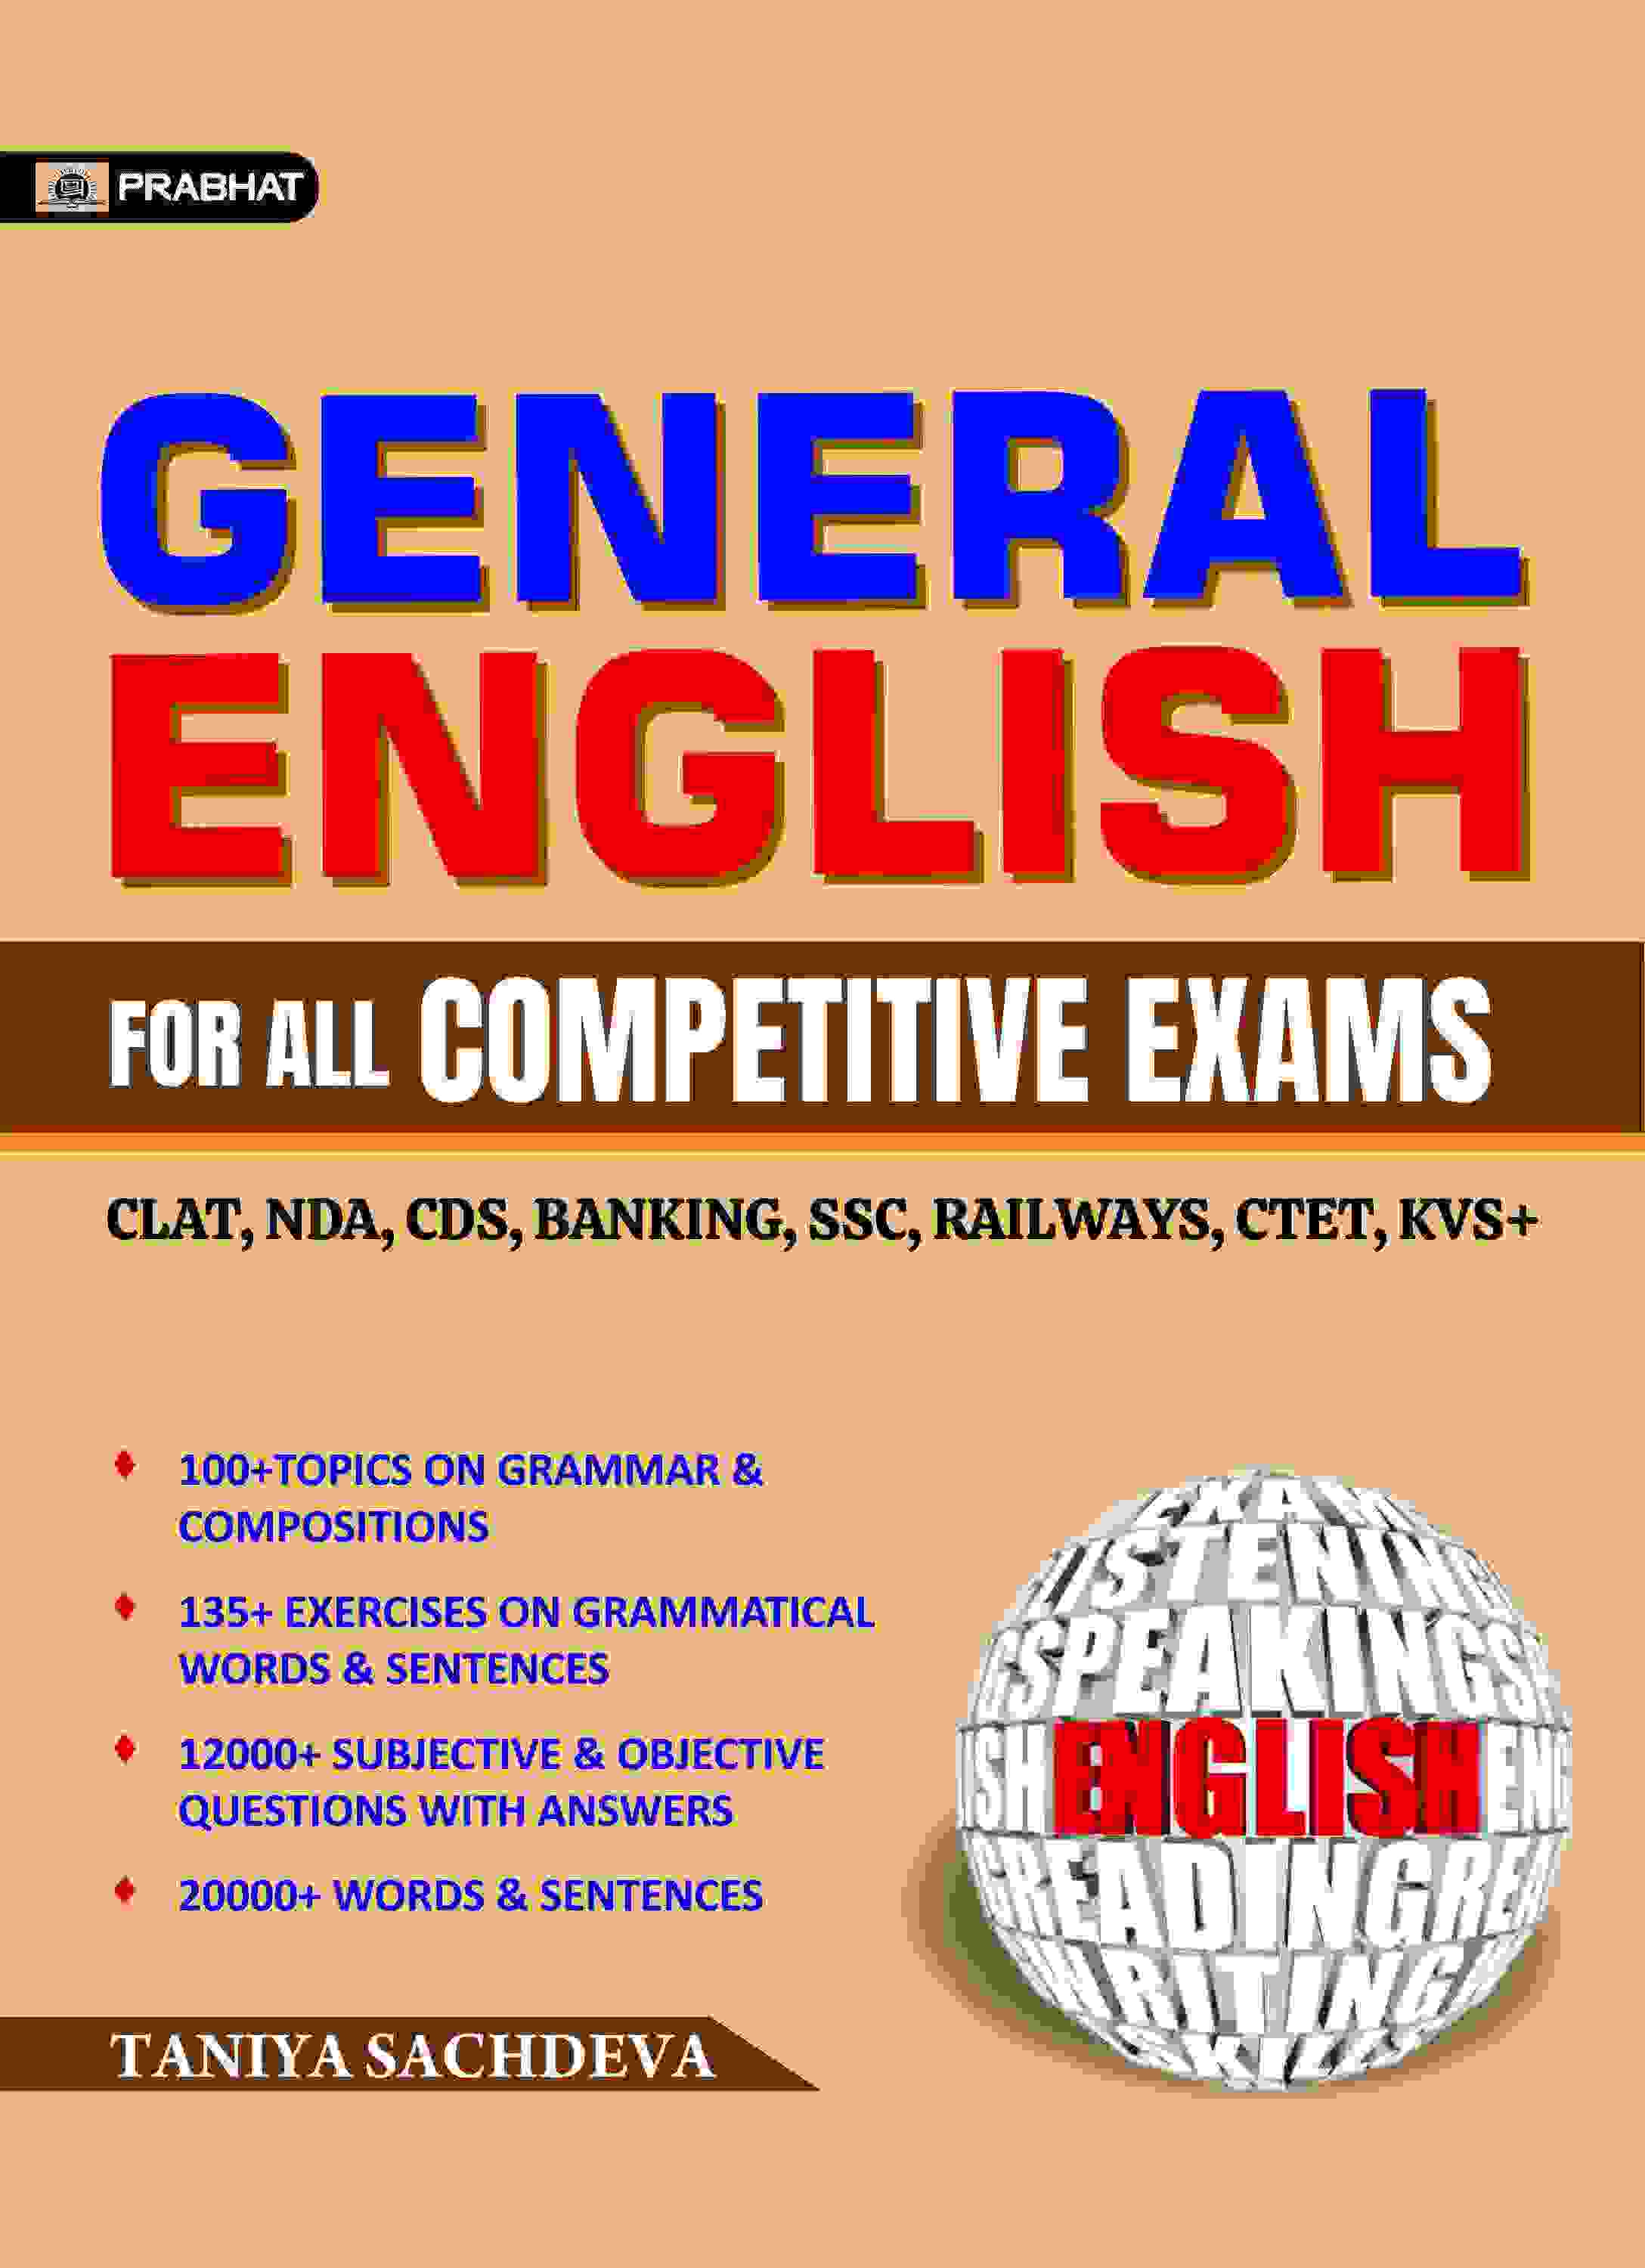 GENERAL ENGLISH FOR ALL COMPETITIVE EXAMS